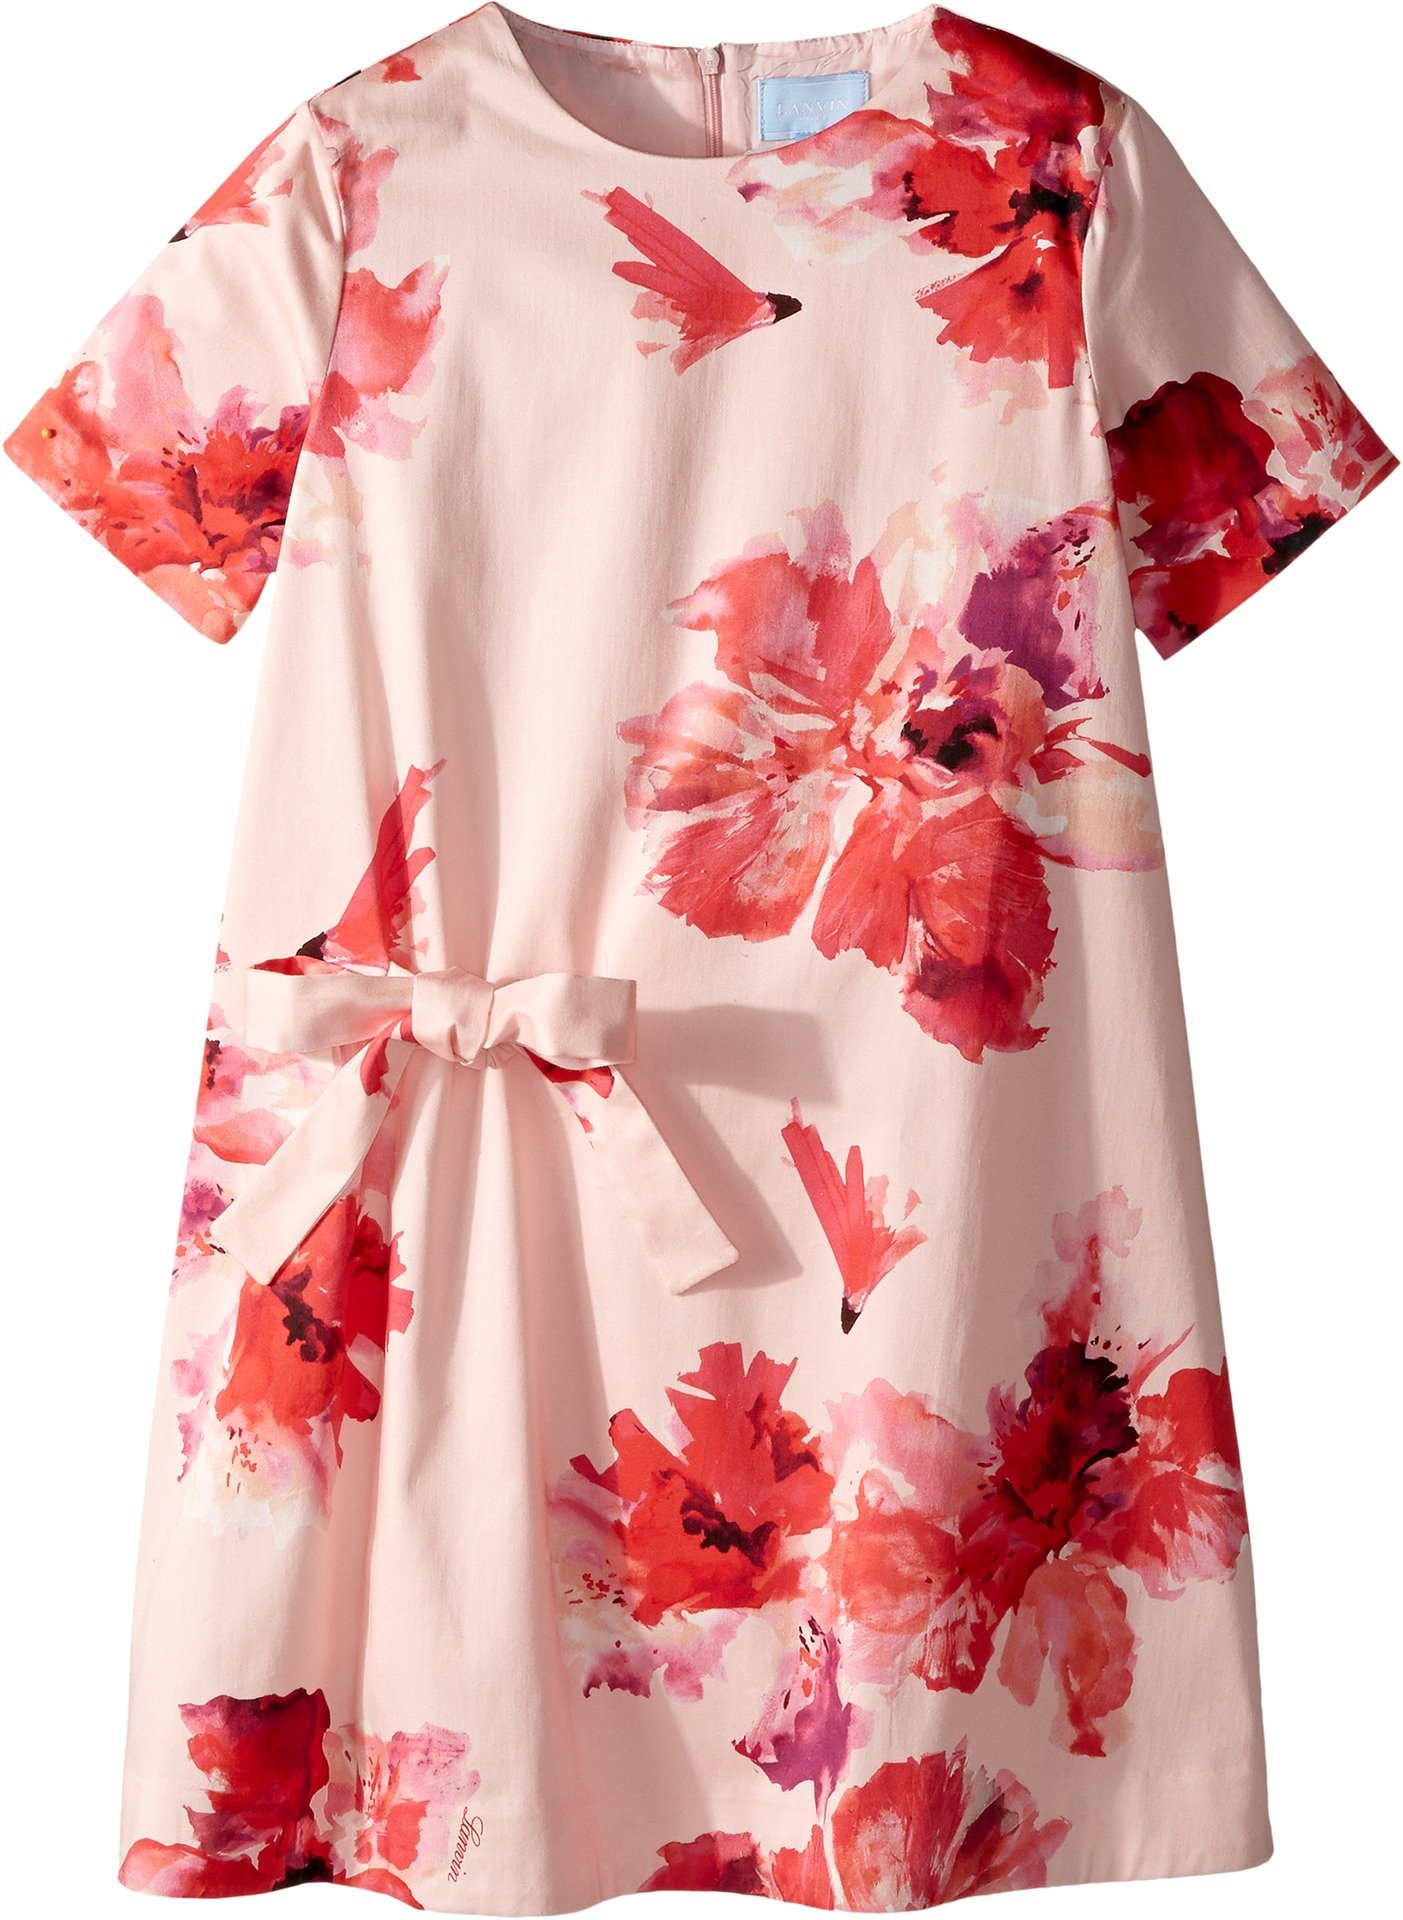 Lanvin Kids Girl's Short Sleeve Floral Print A-Line Dress with Bow On Front (Big Kids) Pink/Multi 10